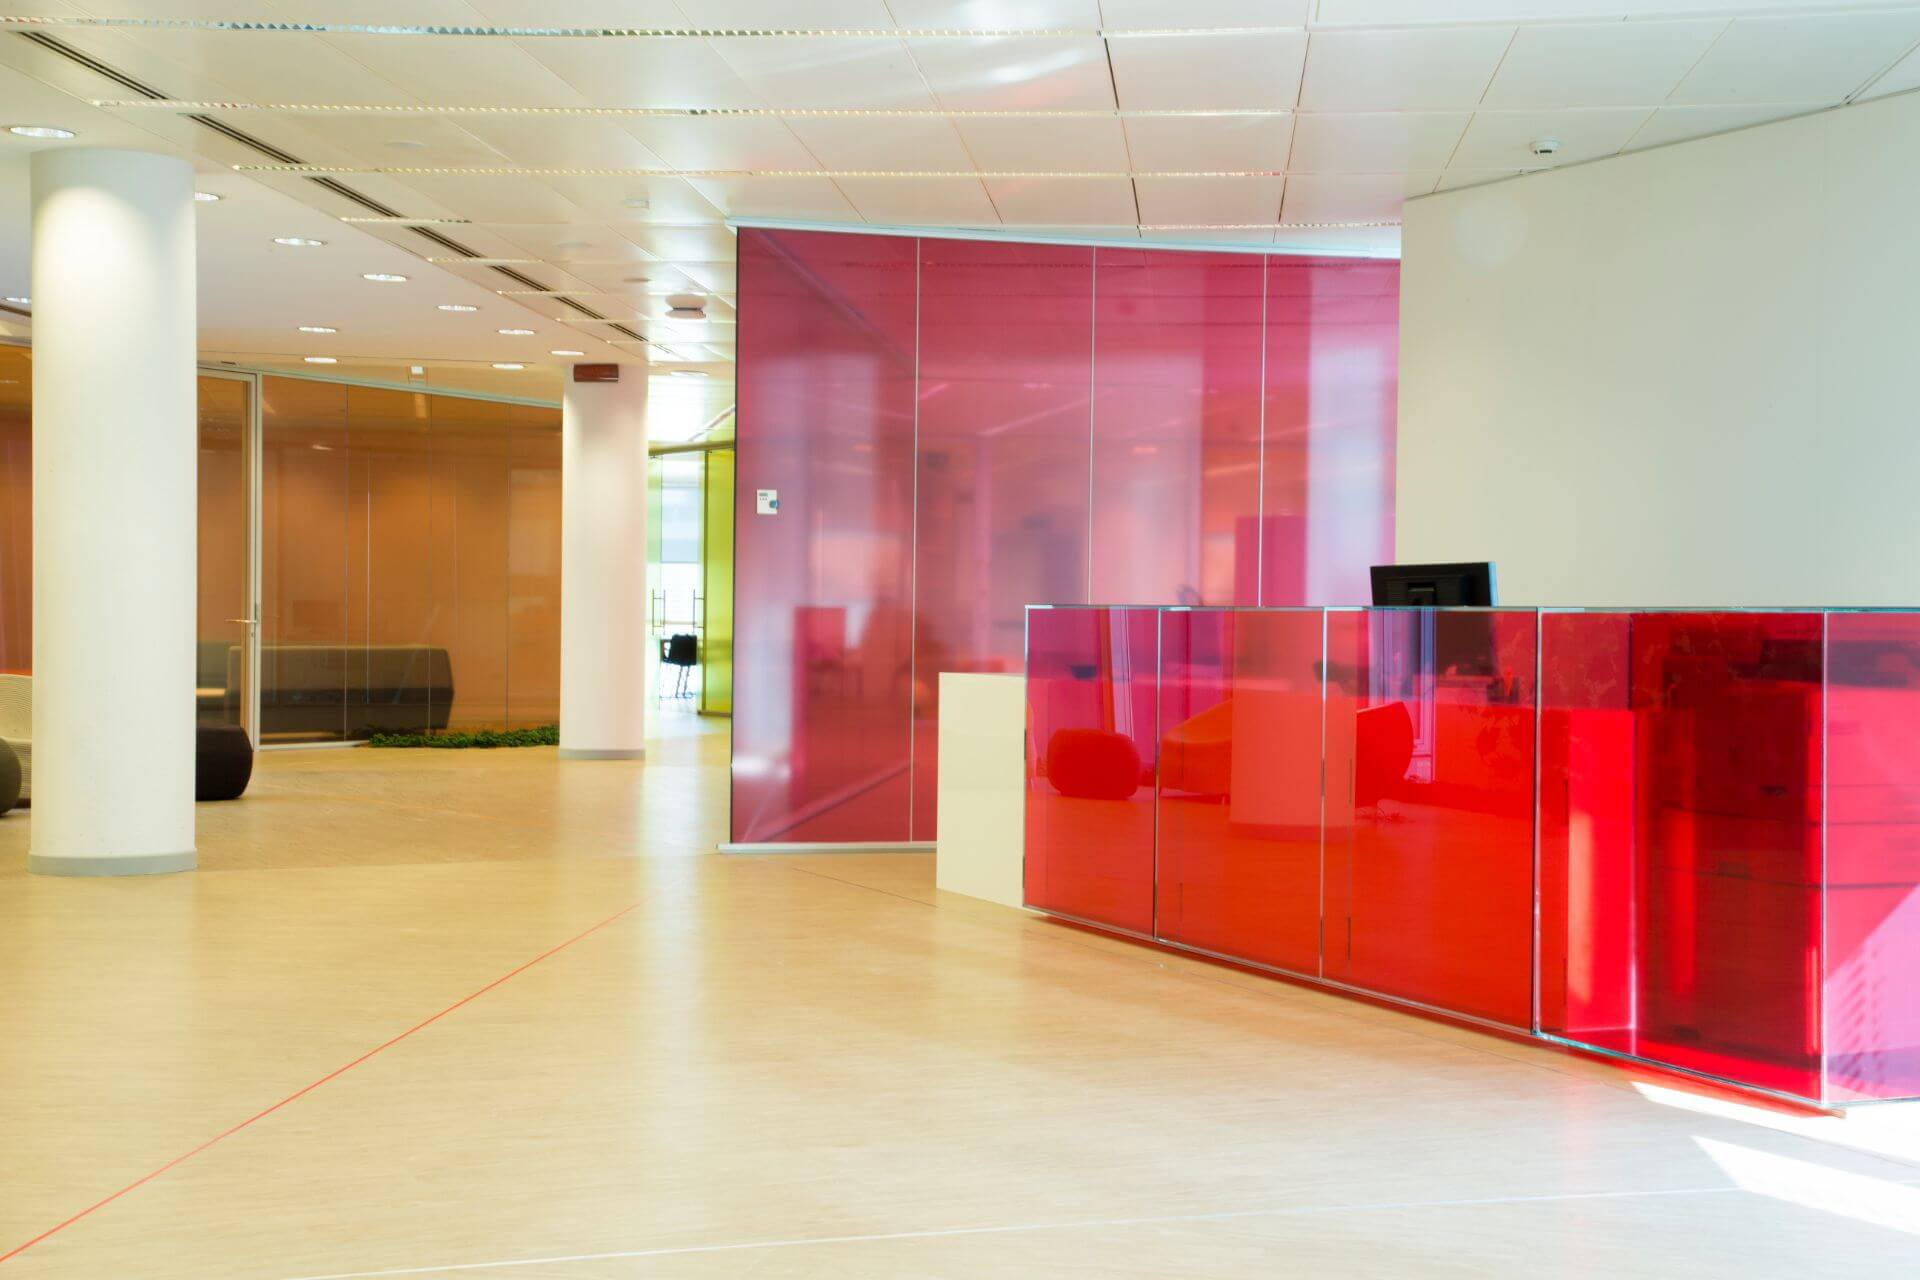 Pareti Divisorie In Vetro astellas offices colored glass partition walls | vetroin